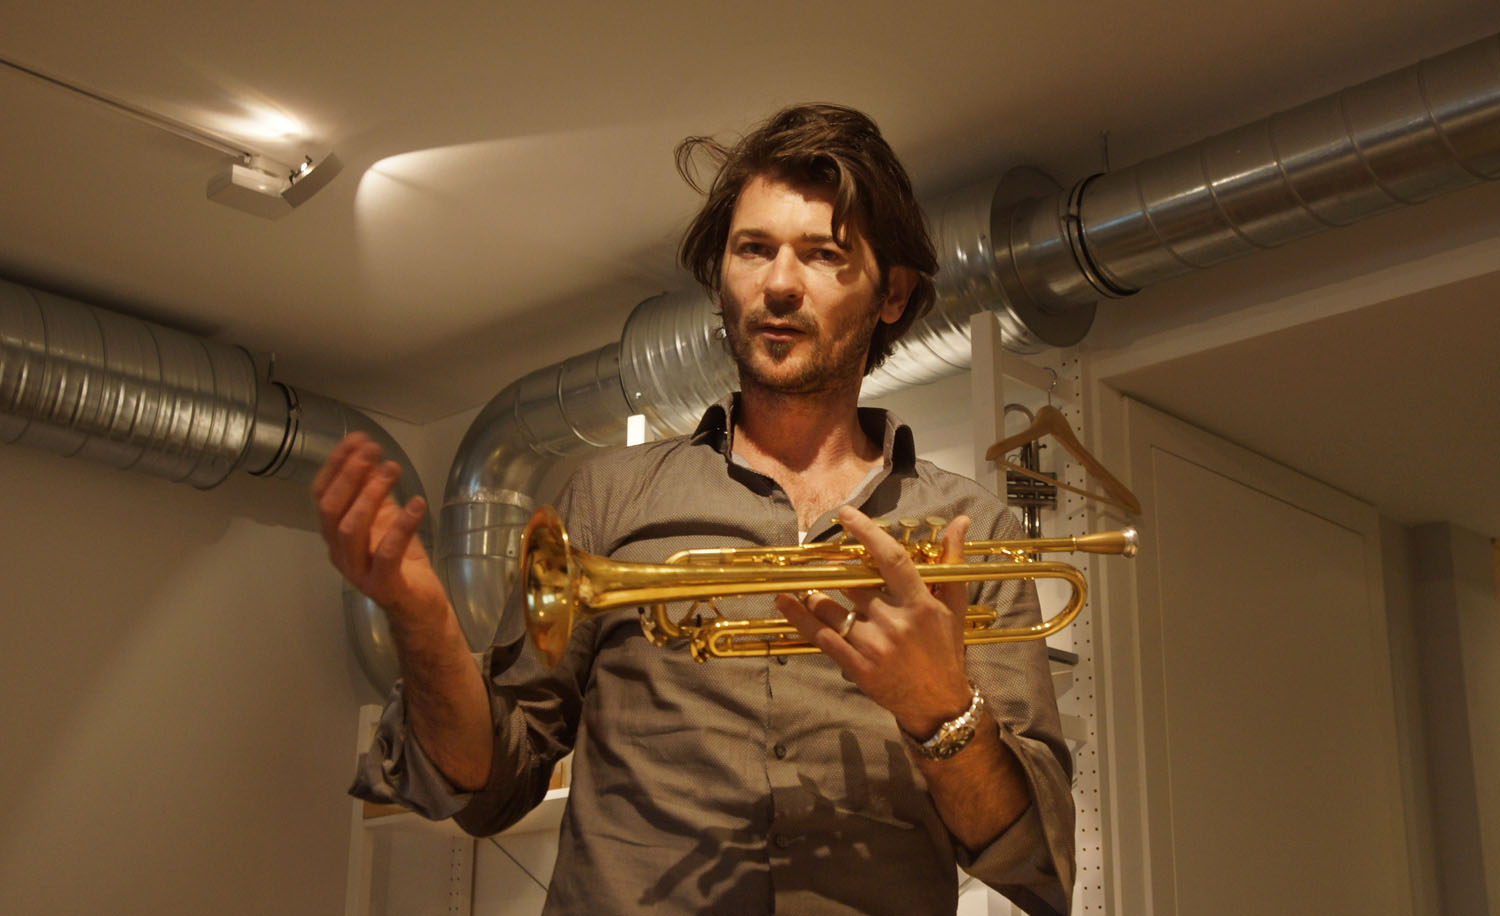 TrumpetScout_Interview Roman Rindberger_2